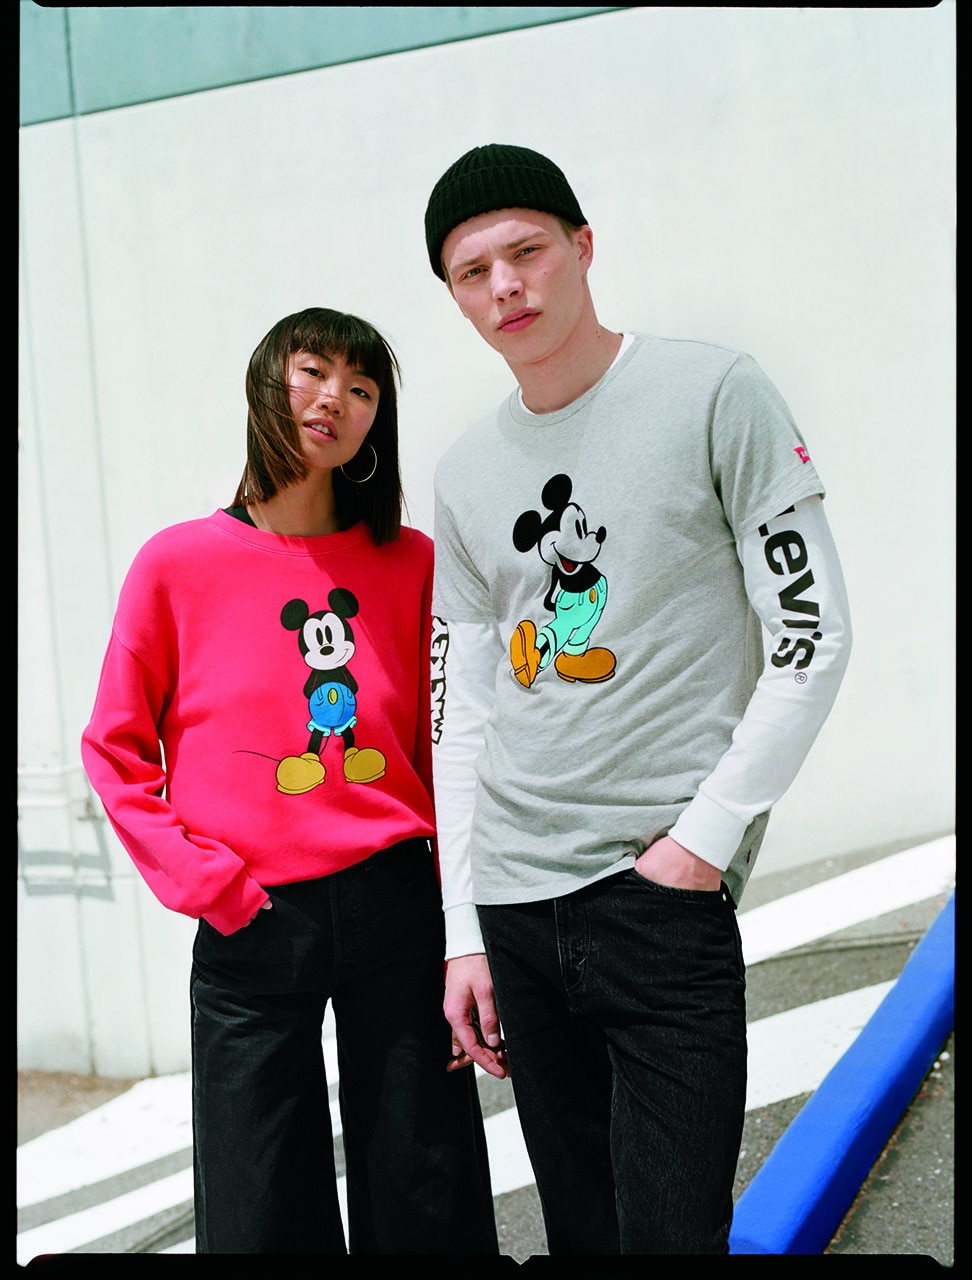 Levi Mickey Mouse themed sweat shirts and tee